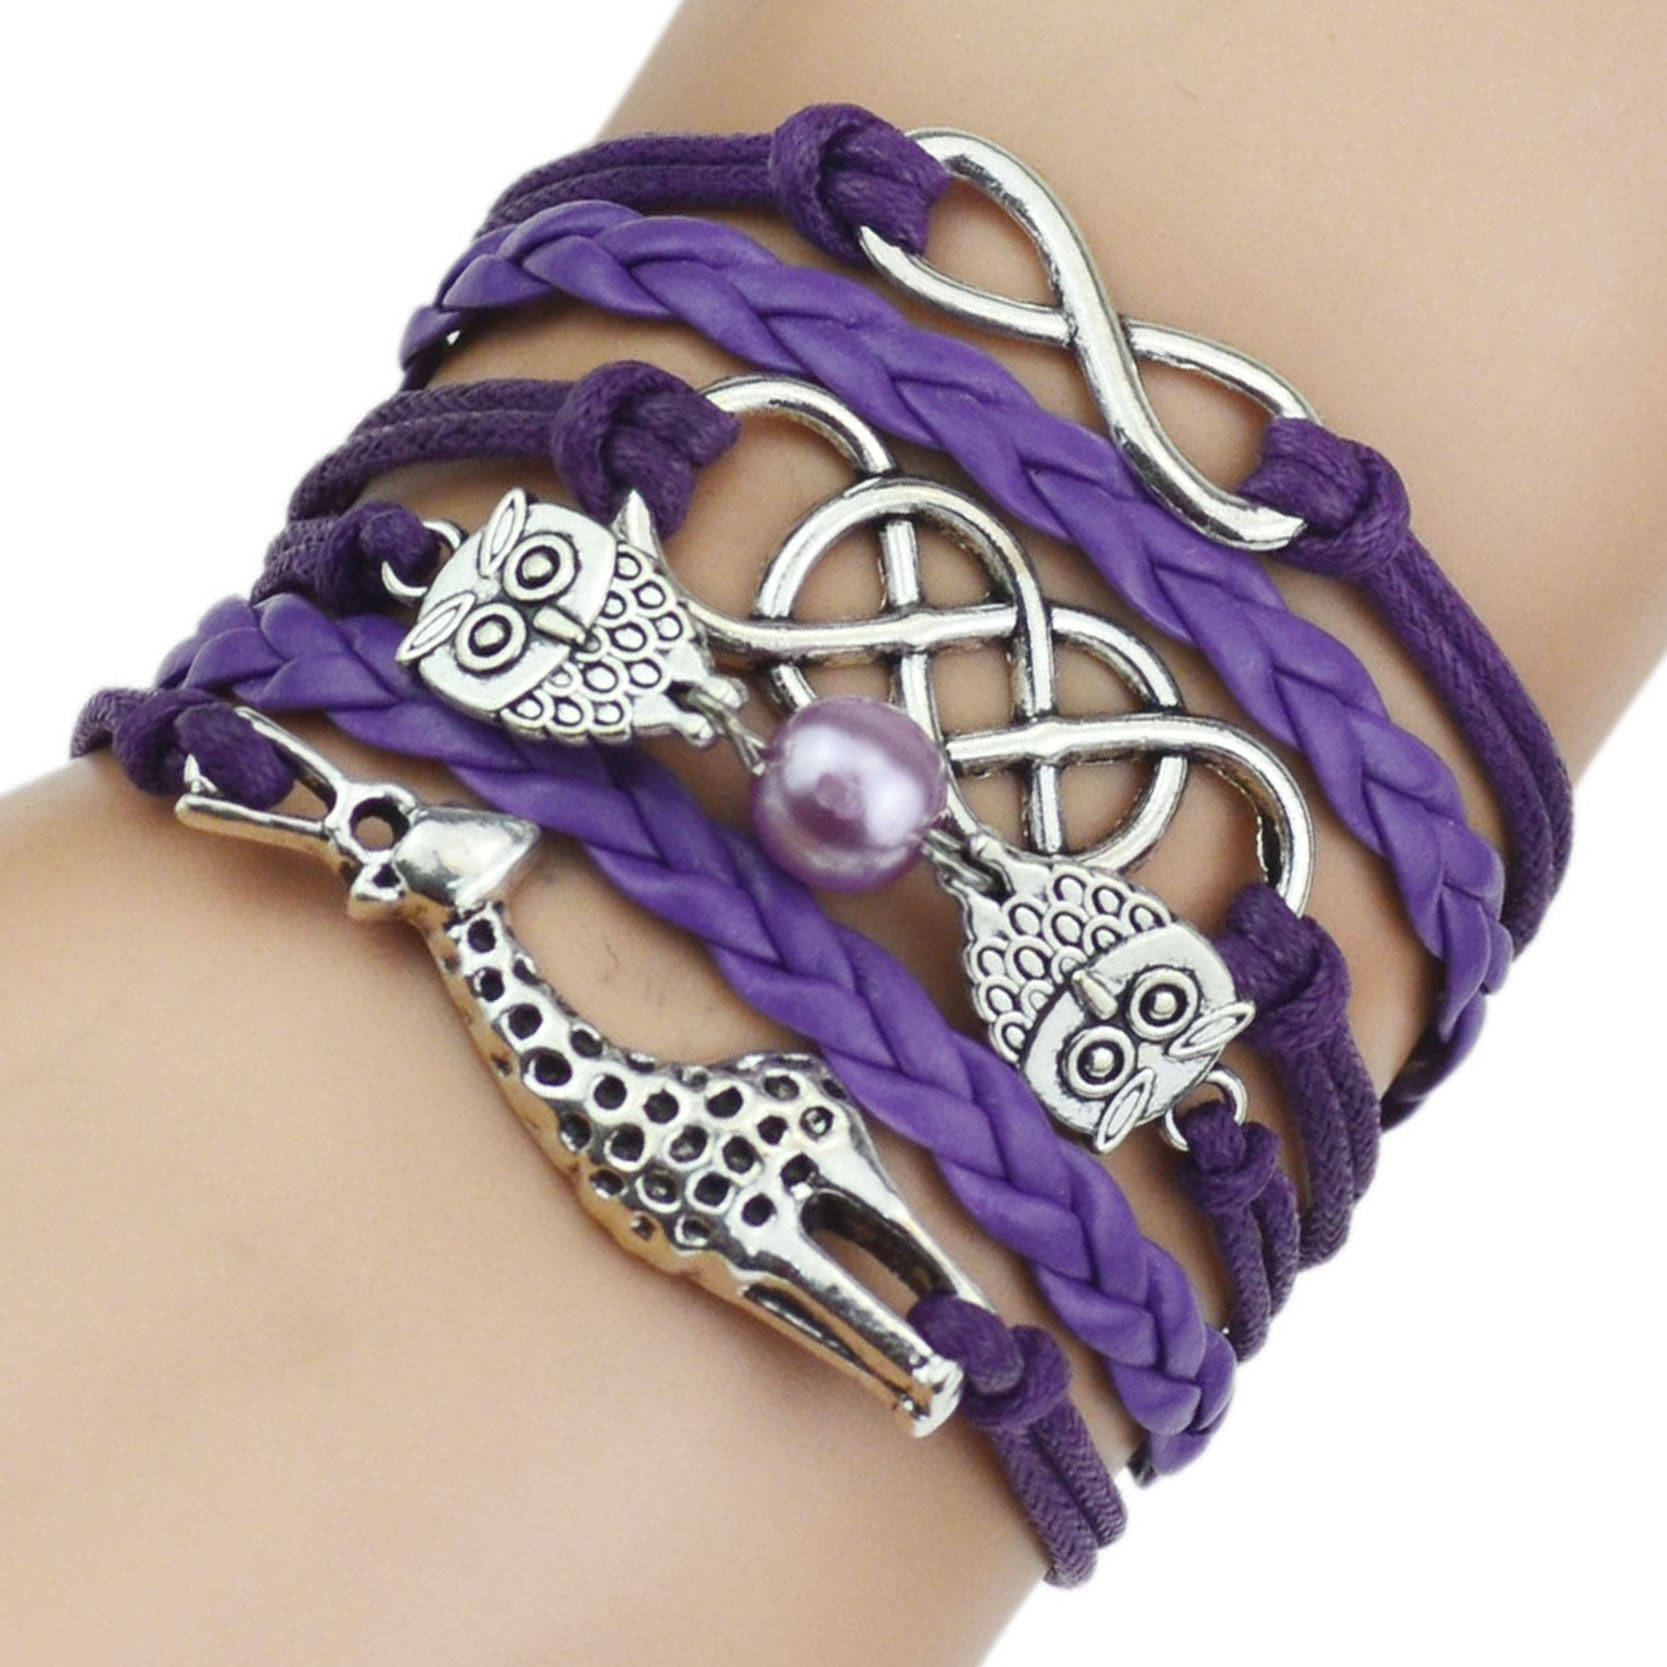 Handmade Jewelry Infinity Multilayer Leather Beads ...